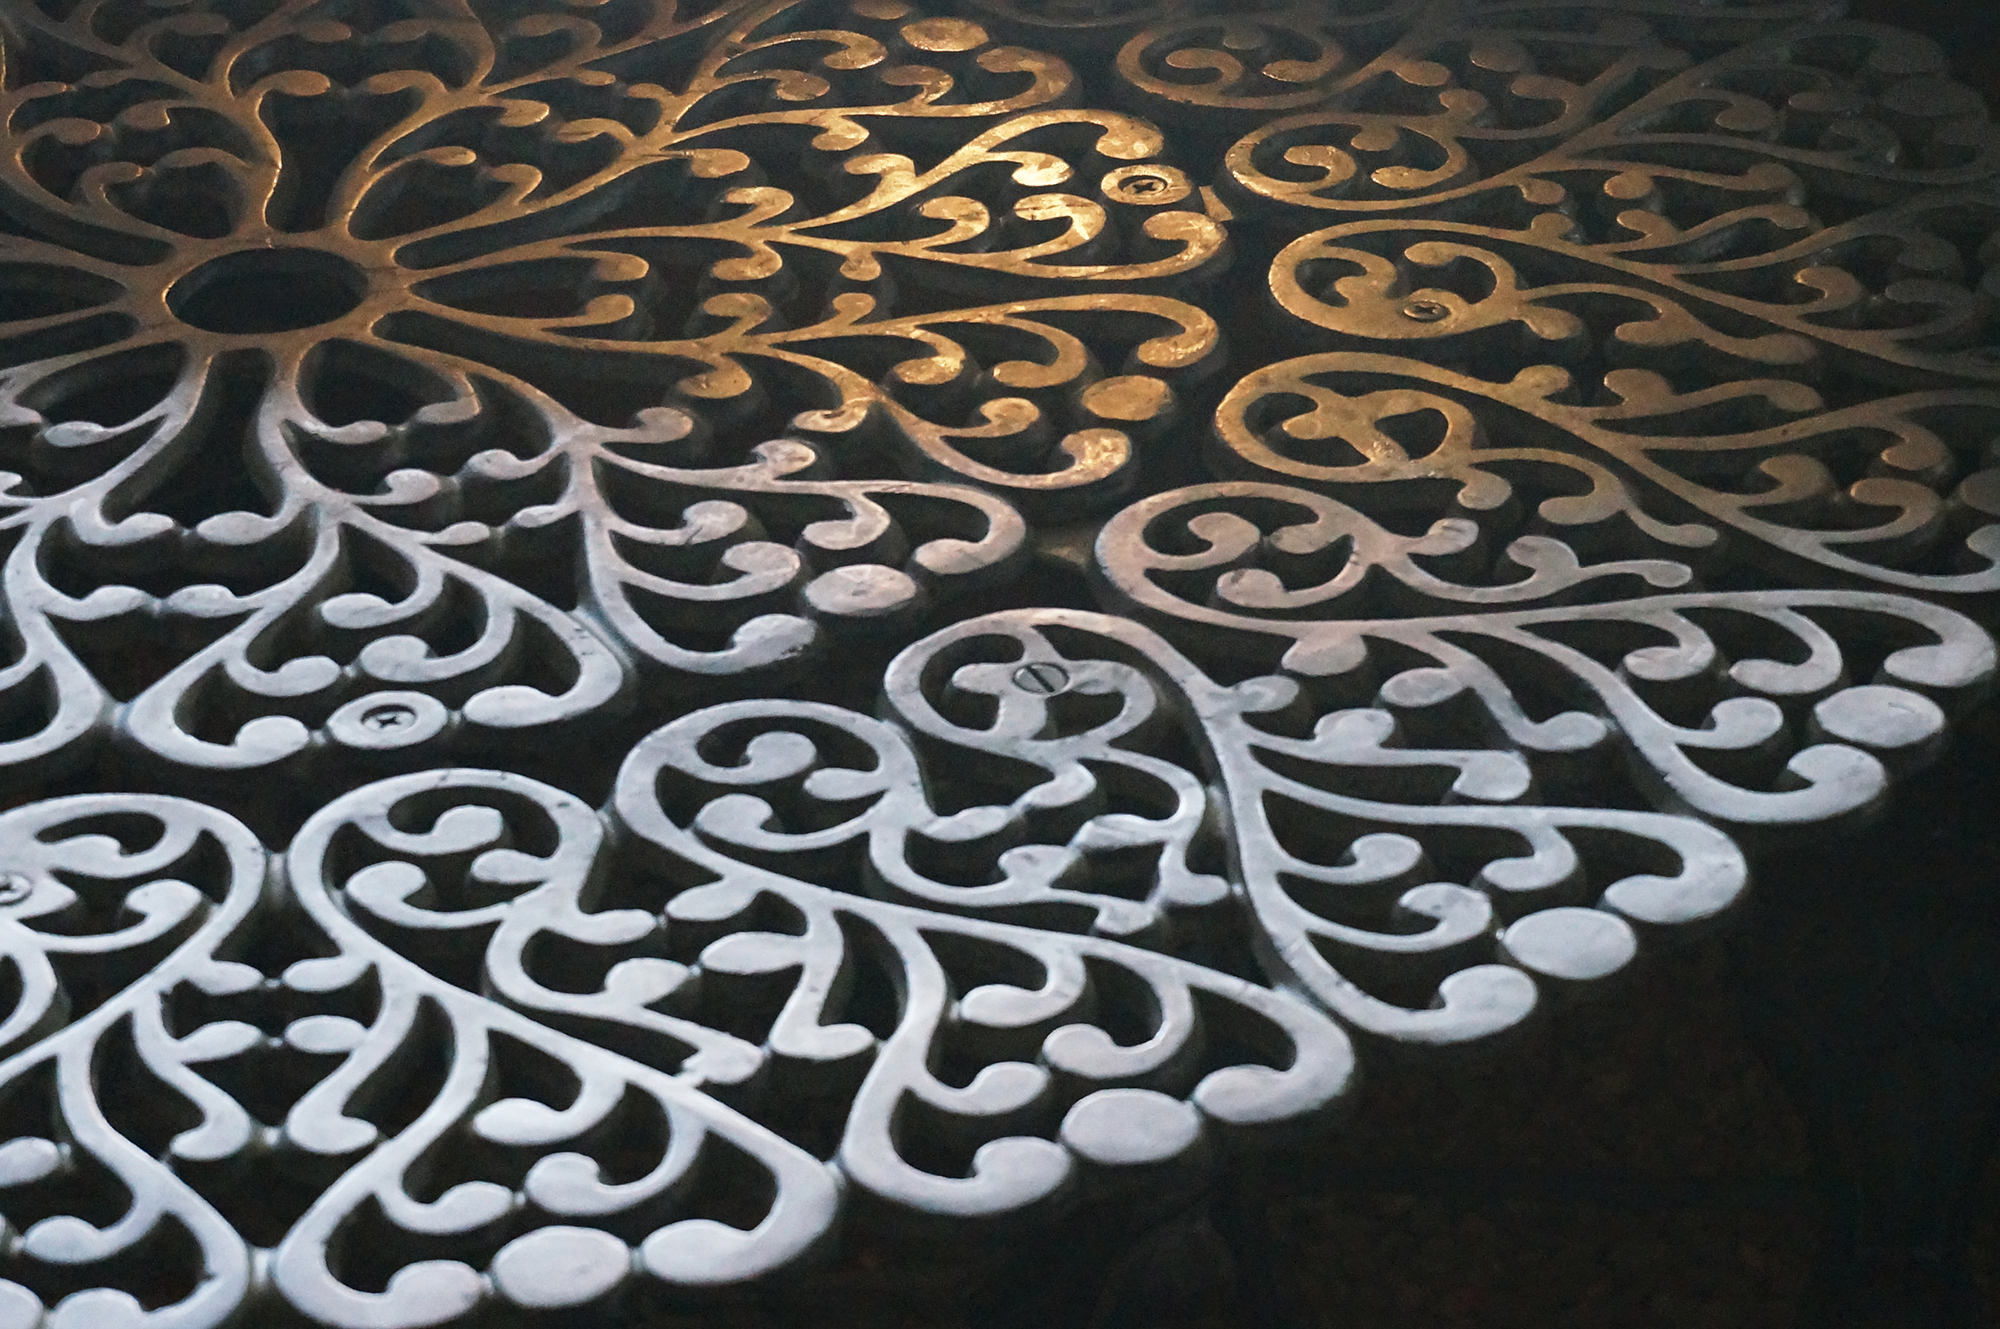 Wrought iron tabletop